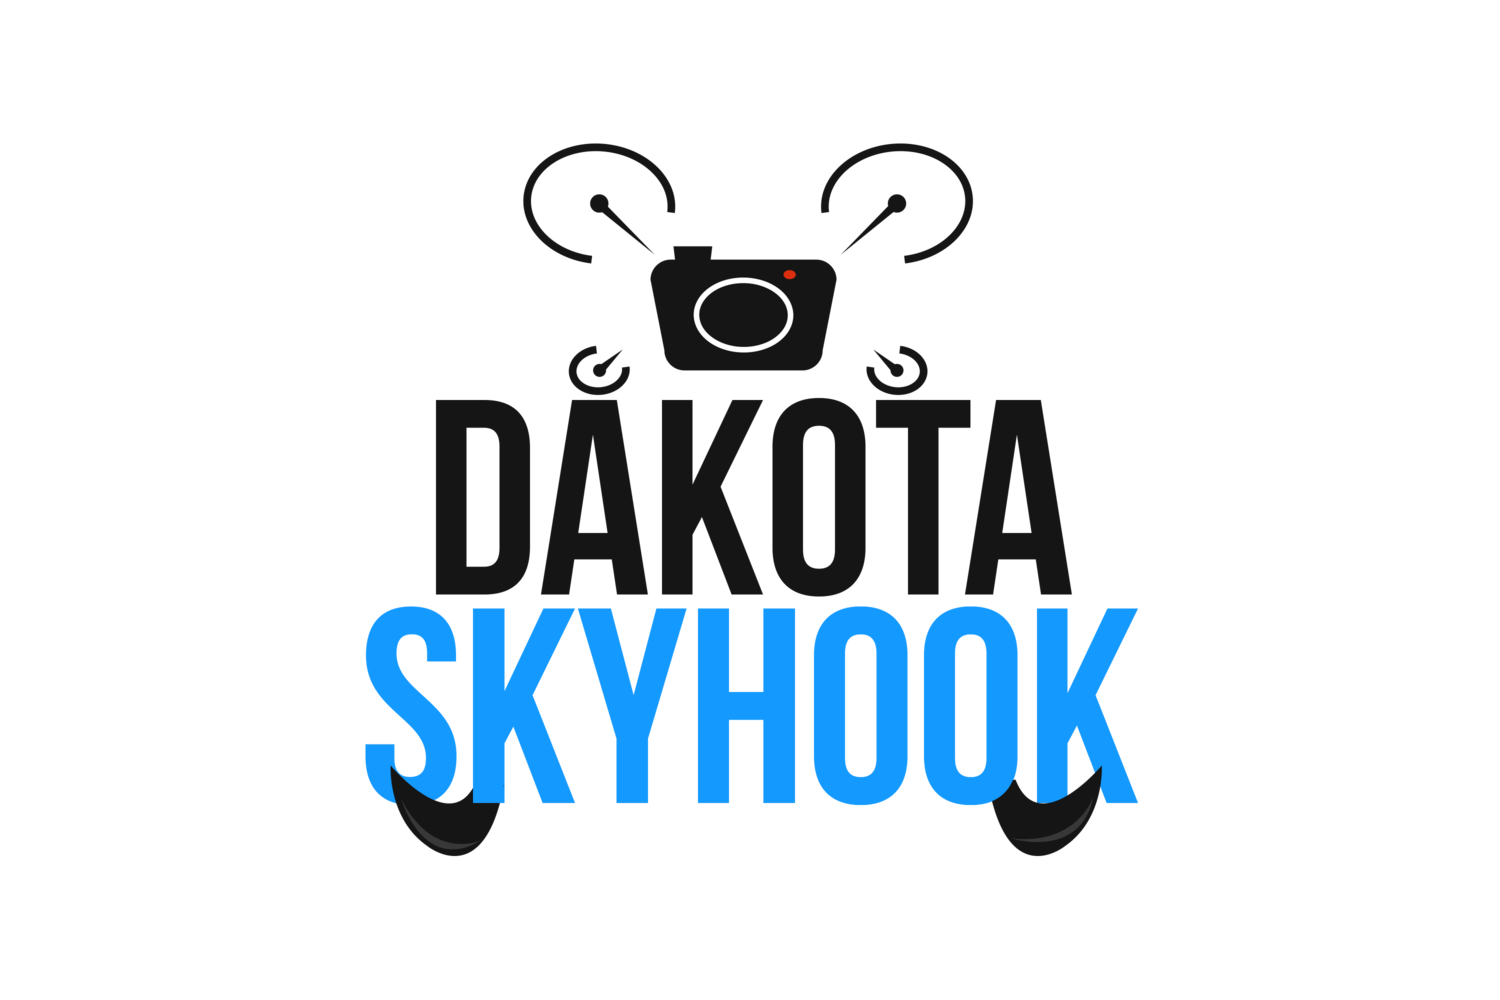 Dakota Skyhook - Drone Photography and Videography - Fargo, ND